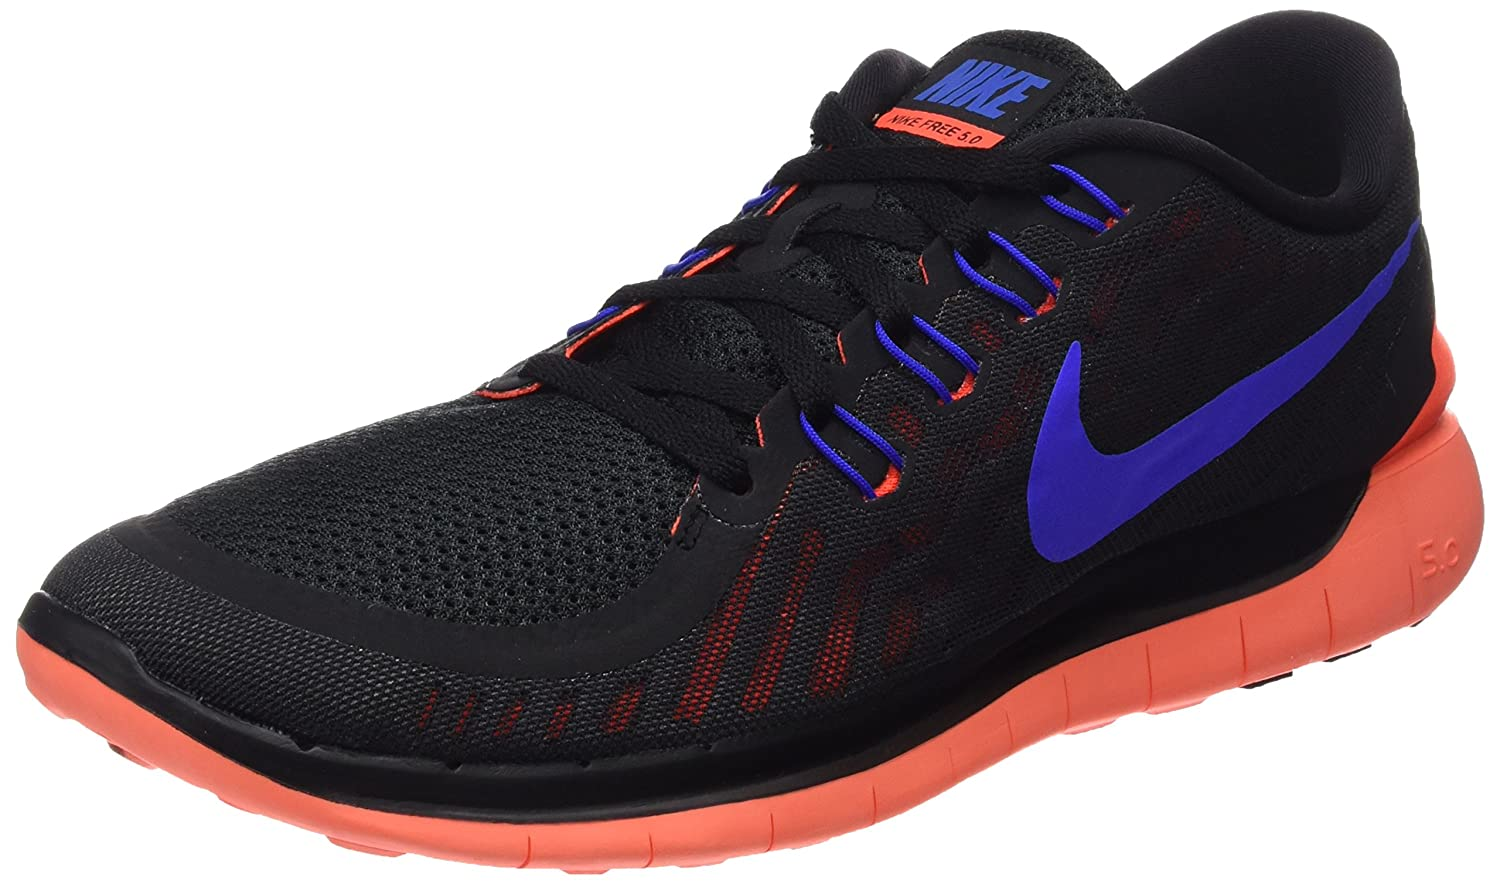 Nike Men's Free 5.0 Running Shoe B002T4OM1I X-Large|Black/Total Crimson/Dark Grey/Racer Blue